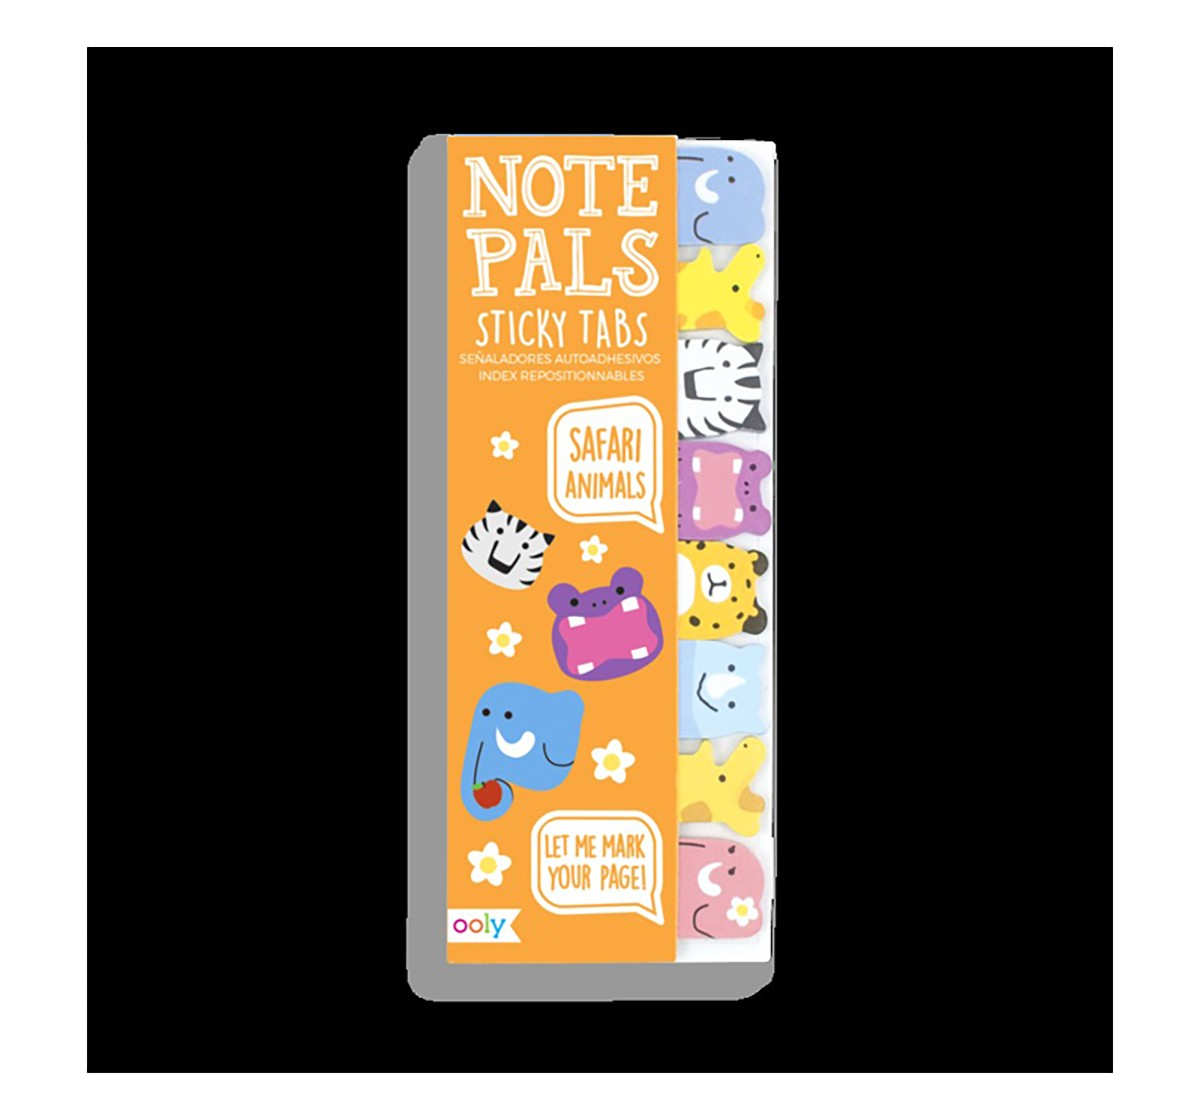 Ooly Note Pals Sticky Tabs - Safari Animals Study & Desk Accessories for Kids age 4Y+